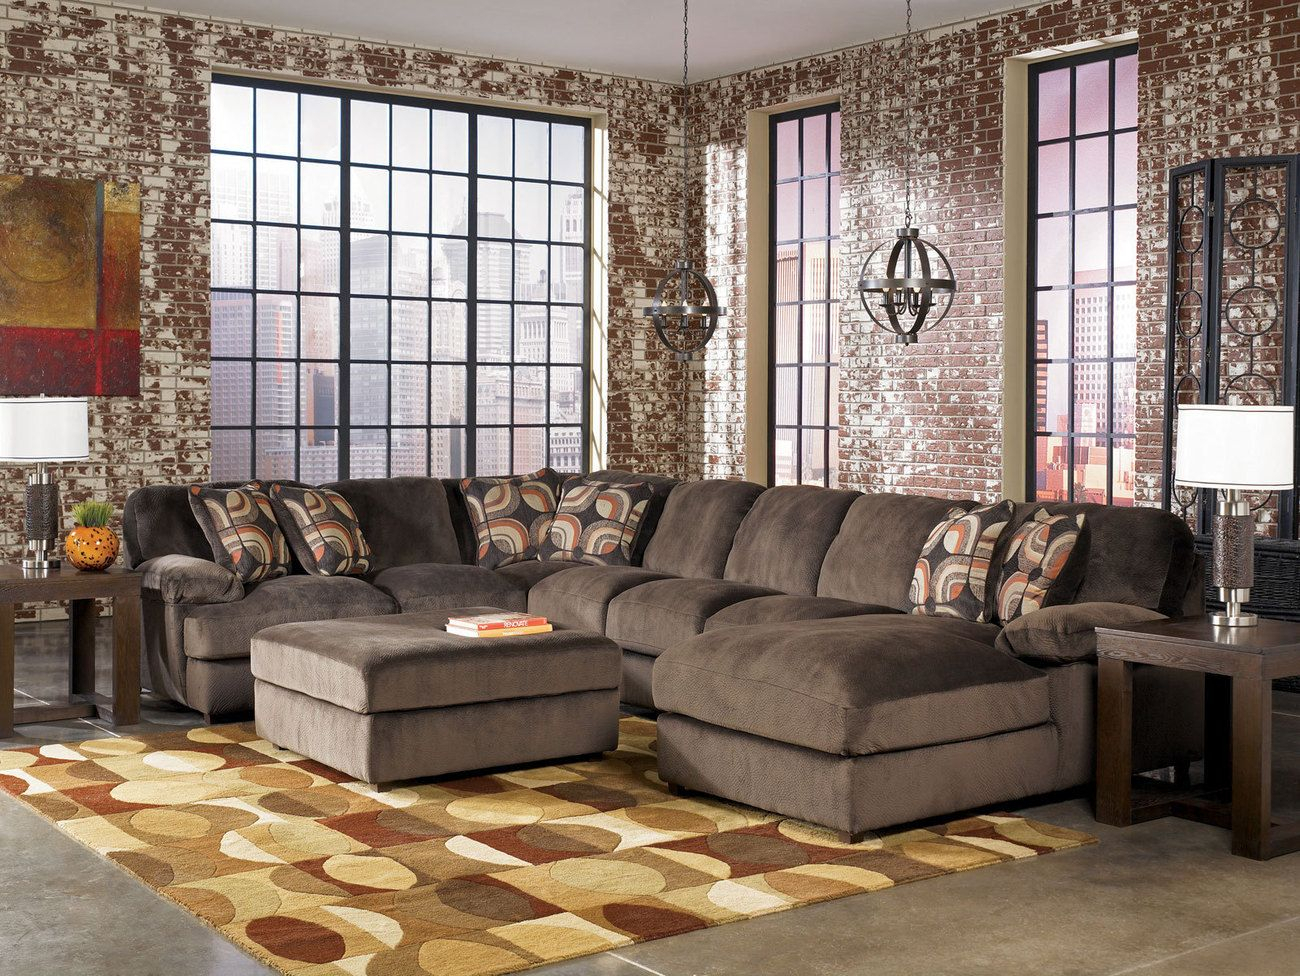 Oversized Sectional Sofas   Best Sofa Design   Large Inside Oversized Sofa Chairs (View 7 of 15)